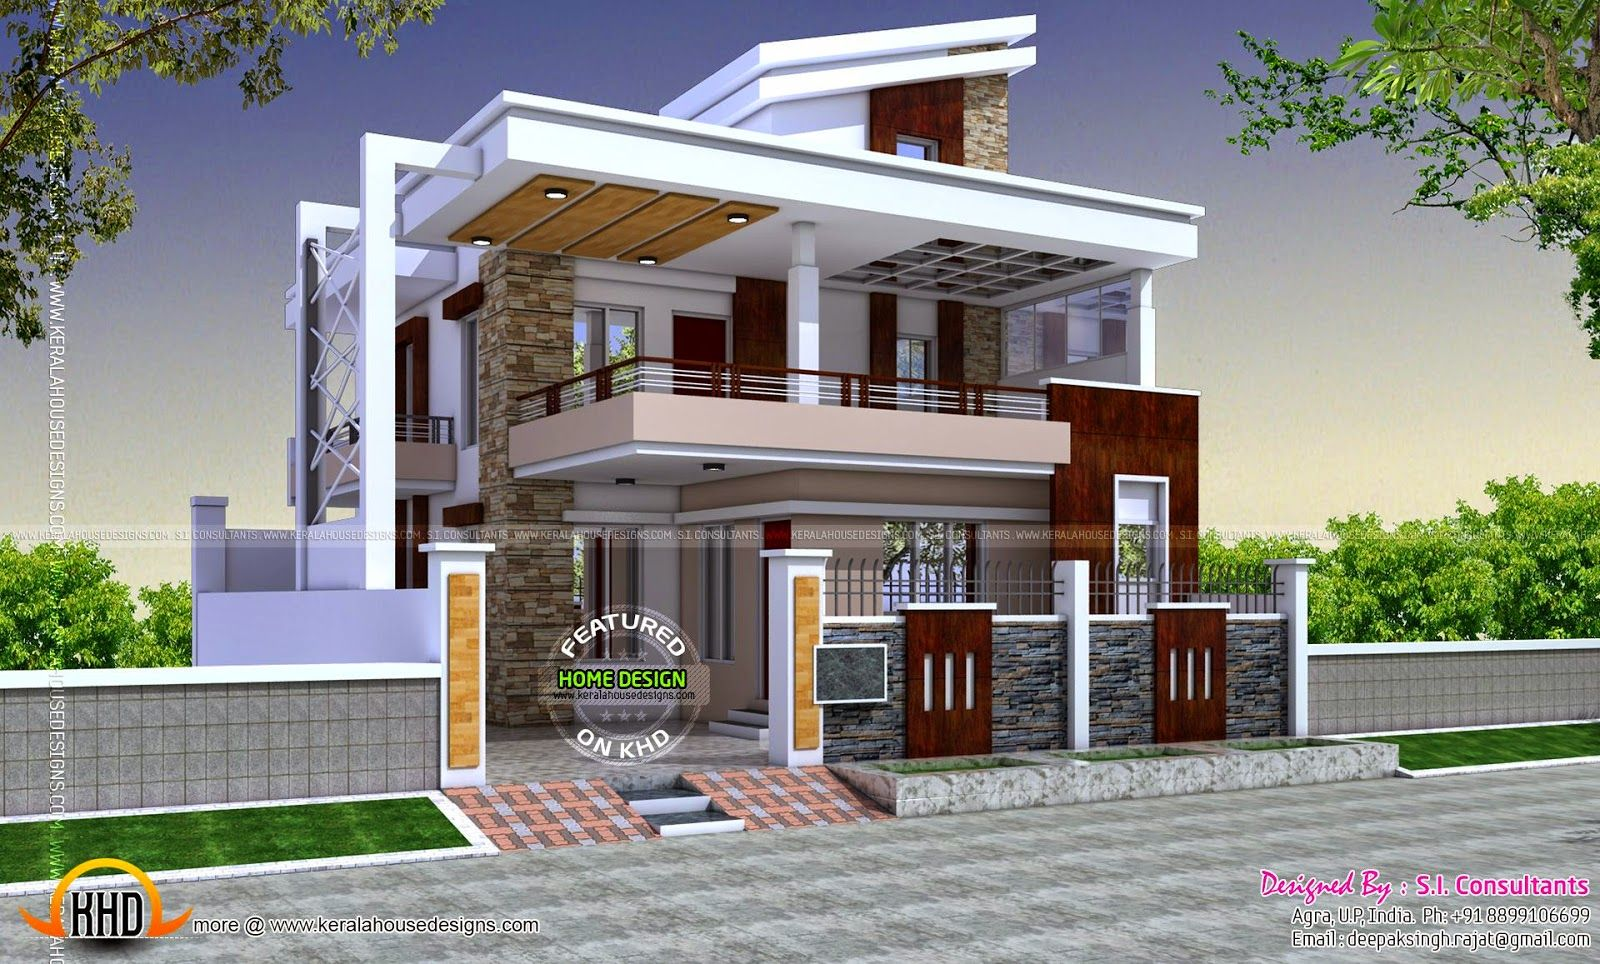 Awesome Compound Designs For Home In India Pictures Interior